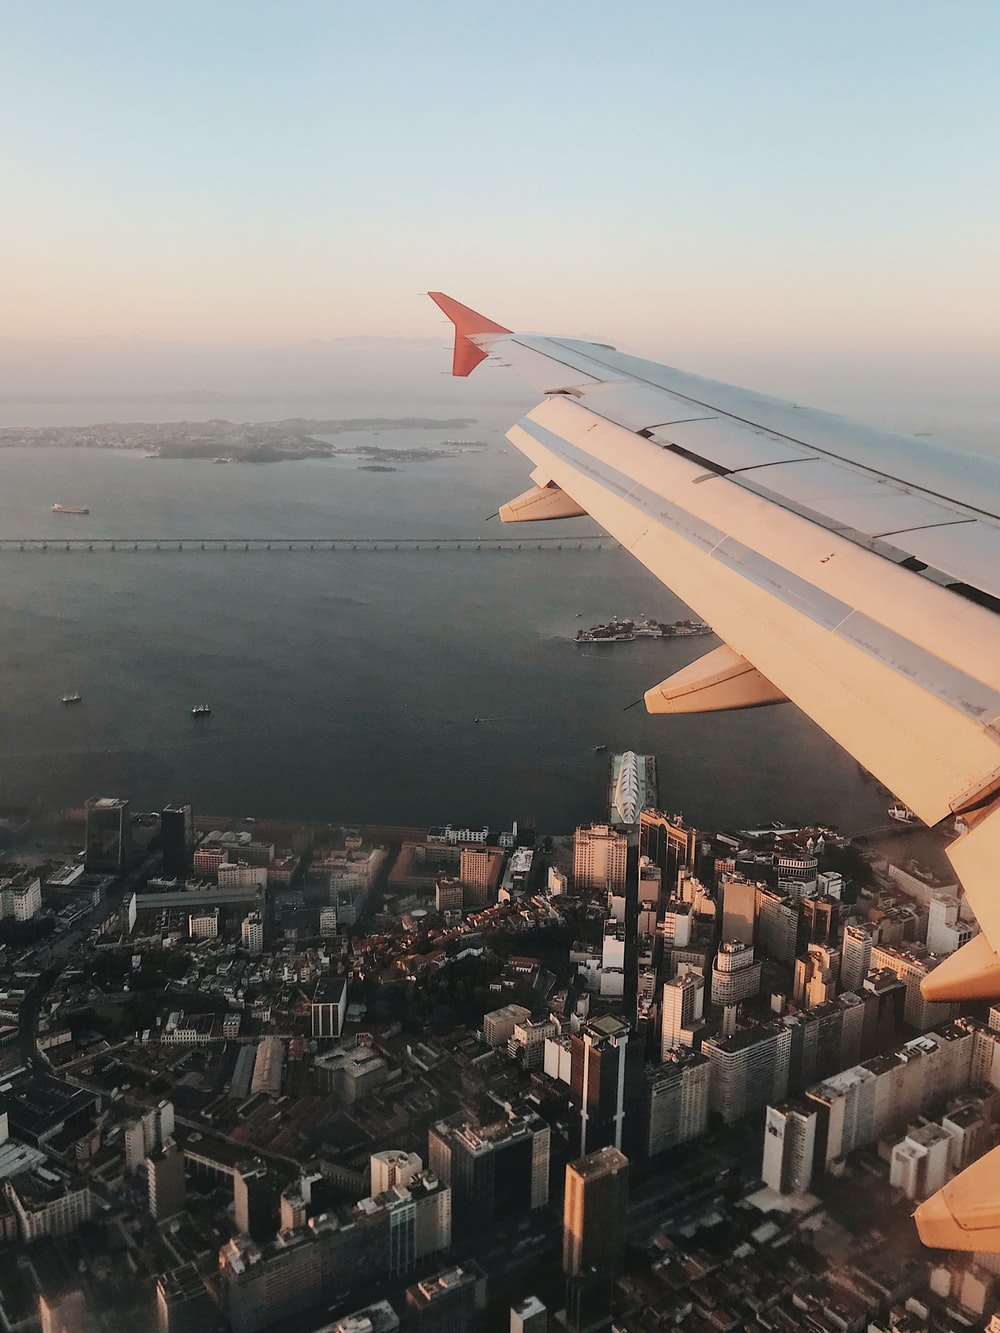 aerial view of plane wings and view of high-rise buildings